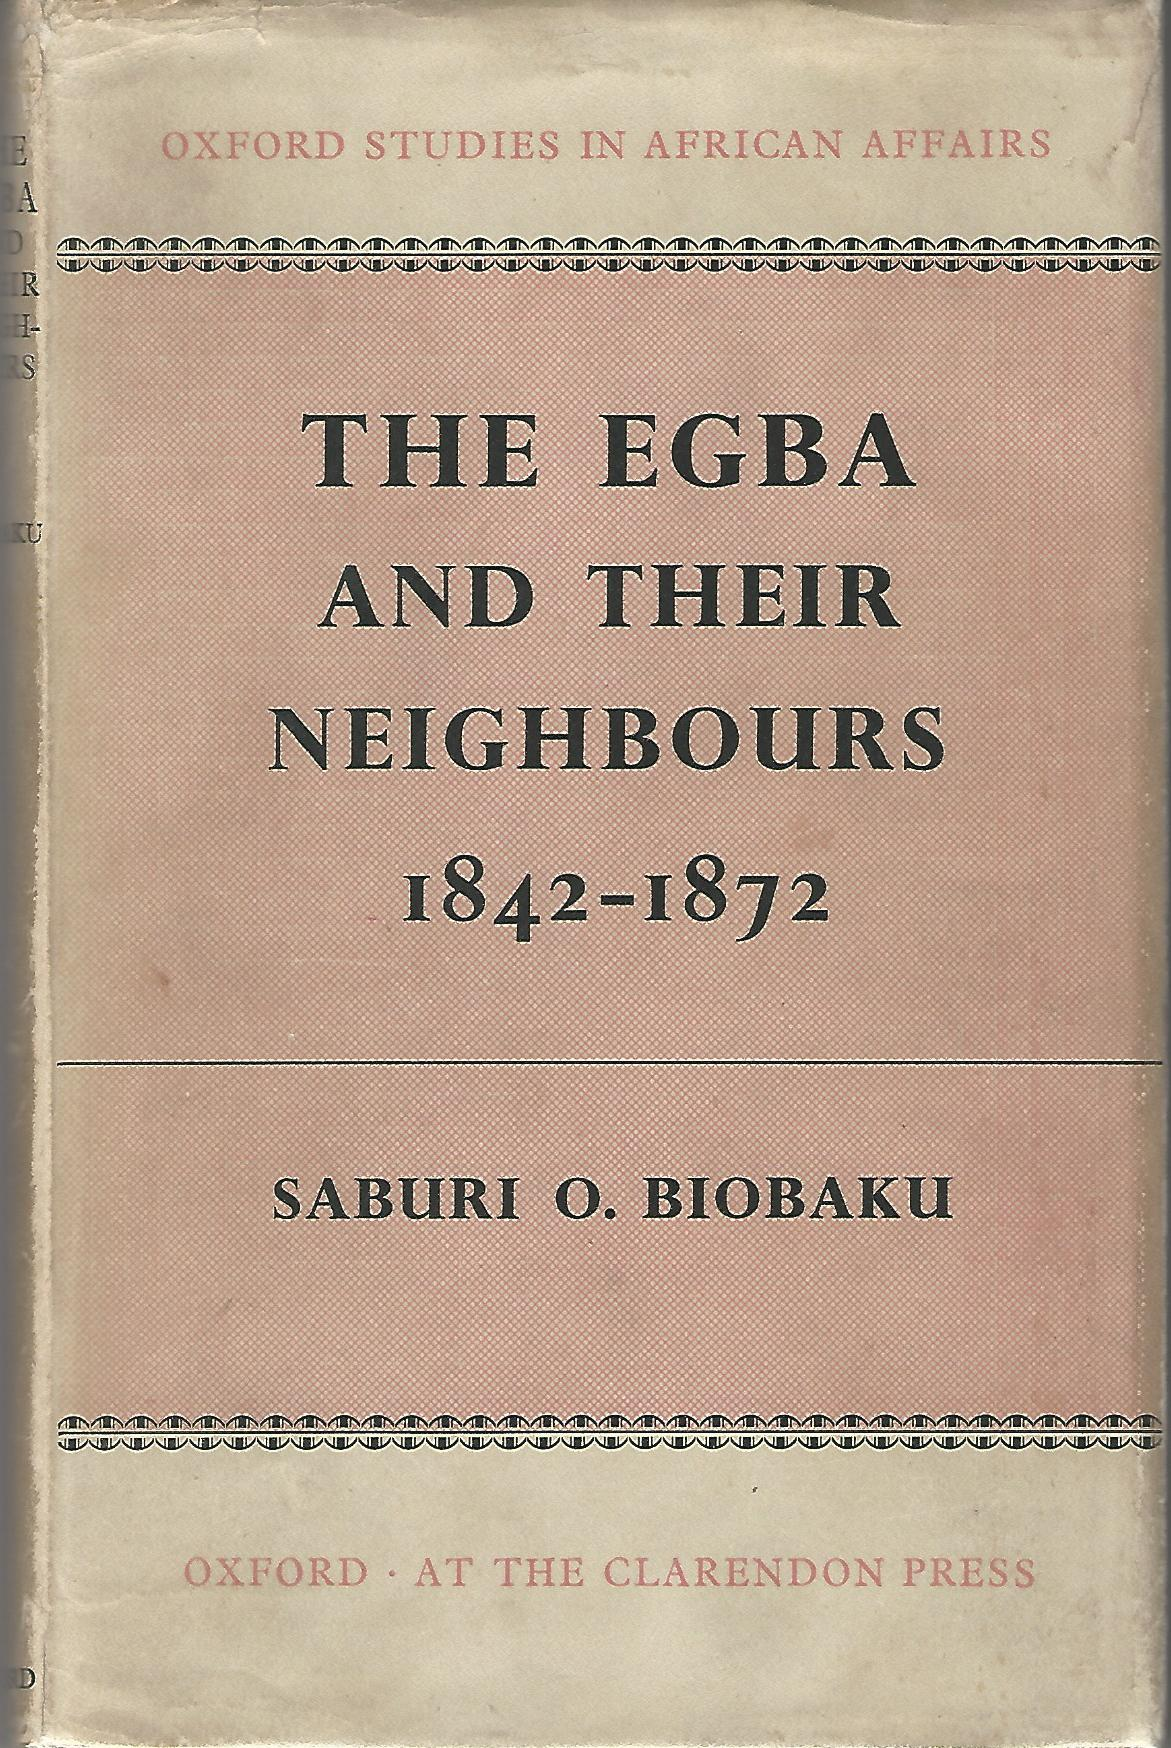 Image for The Egba and their Neighbours 1842-1872.